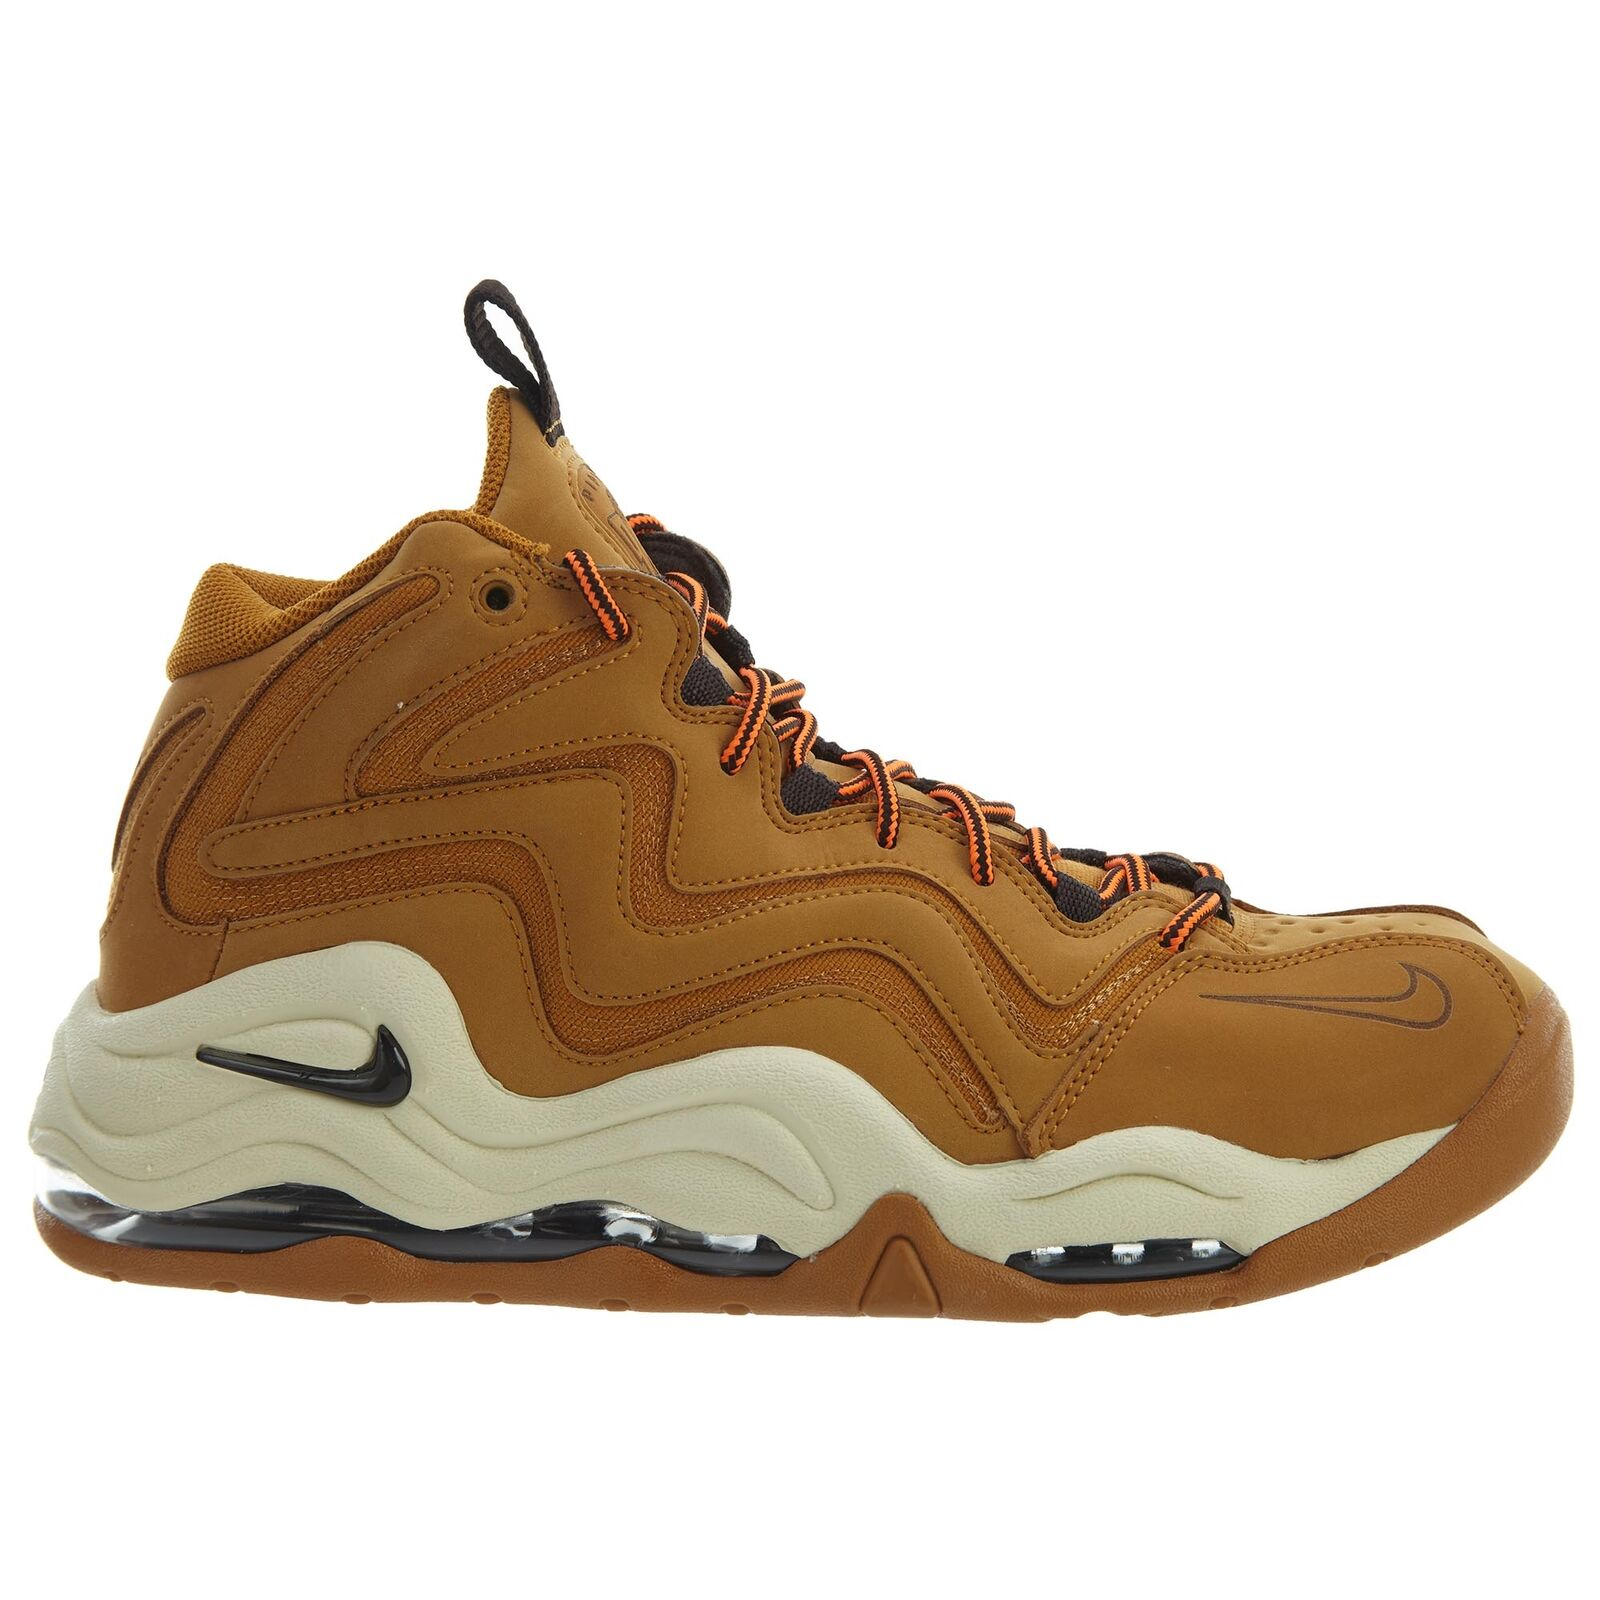 Nike Basketball Air Pippen Wheat Uomo 325001 700 Desert Basketball Nike Ochre   f17d76